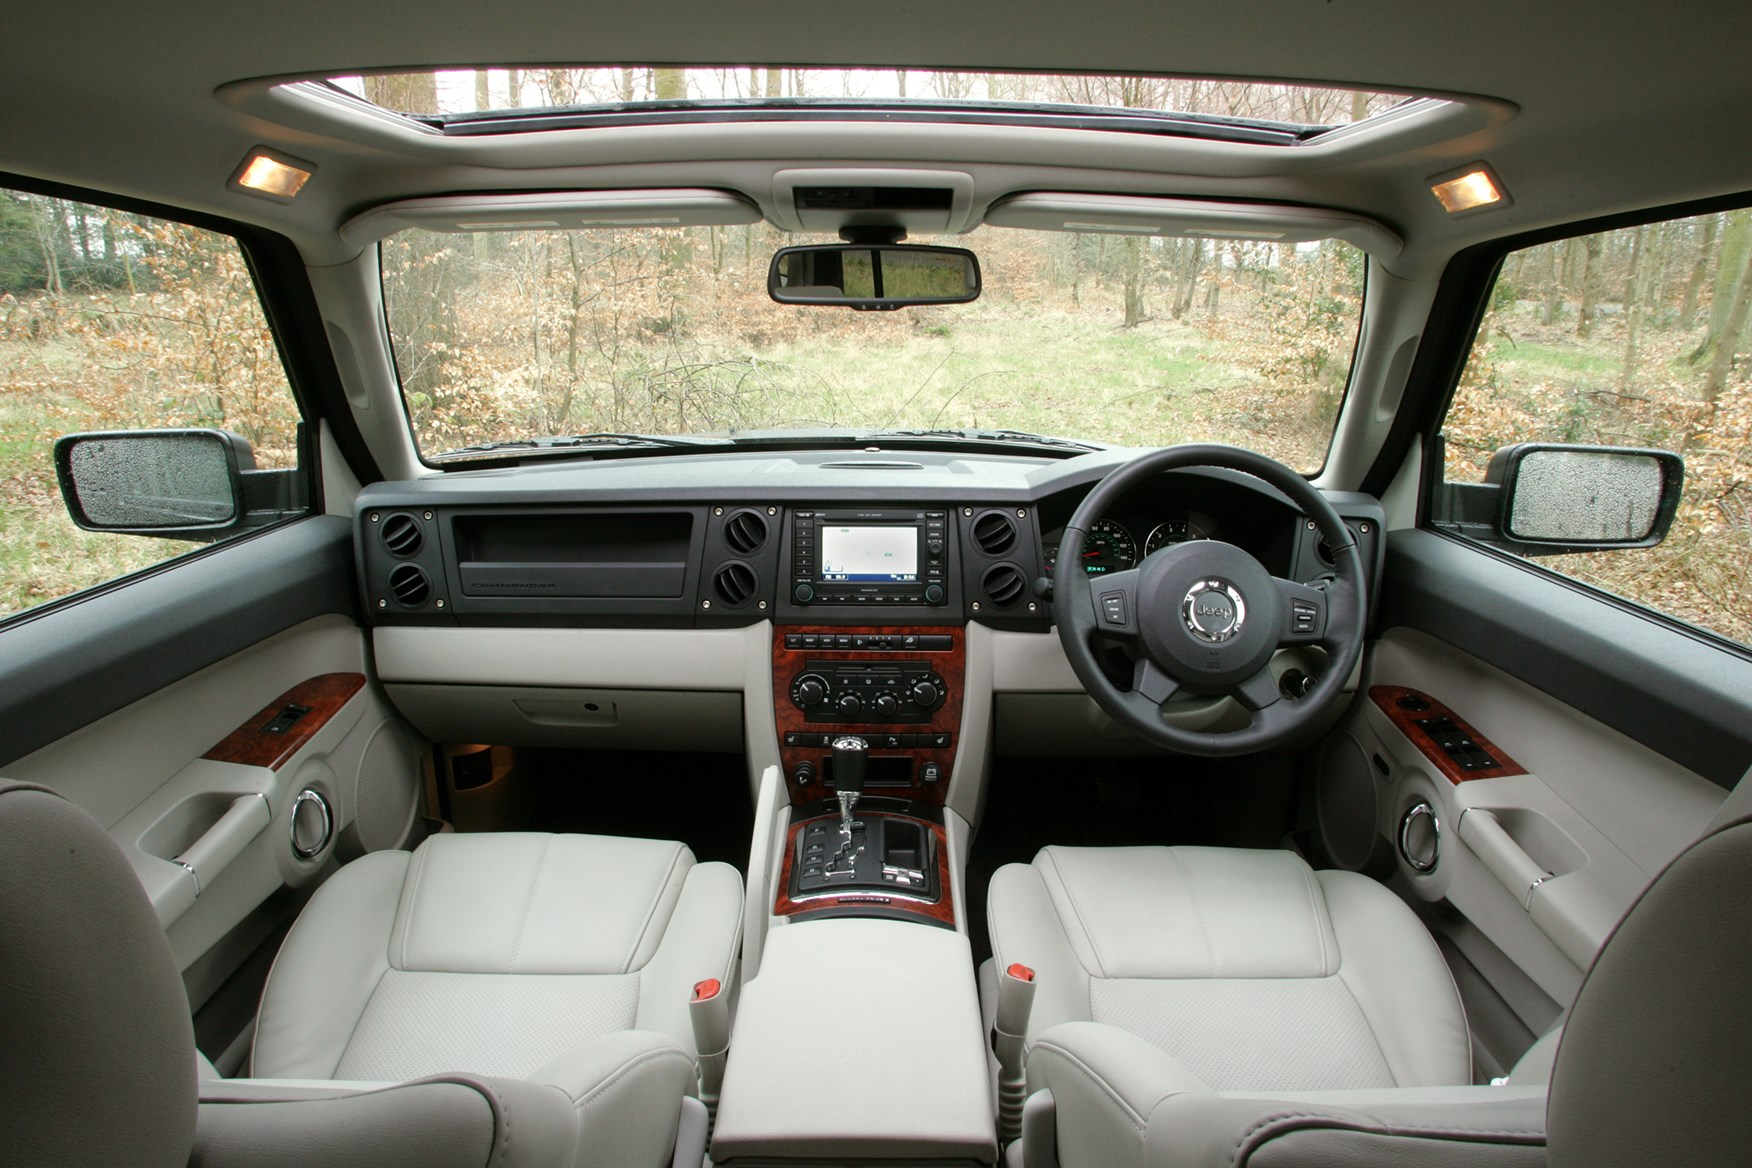 Jeep Wrangler For Sale Uk >> Jeep Commander Station Wagon Review (2006 - 2009) | Parkers